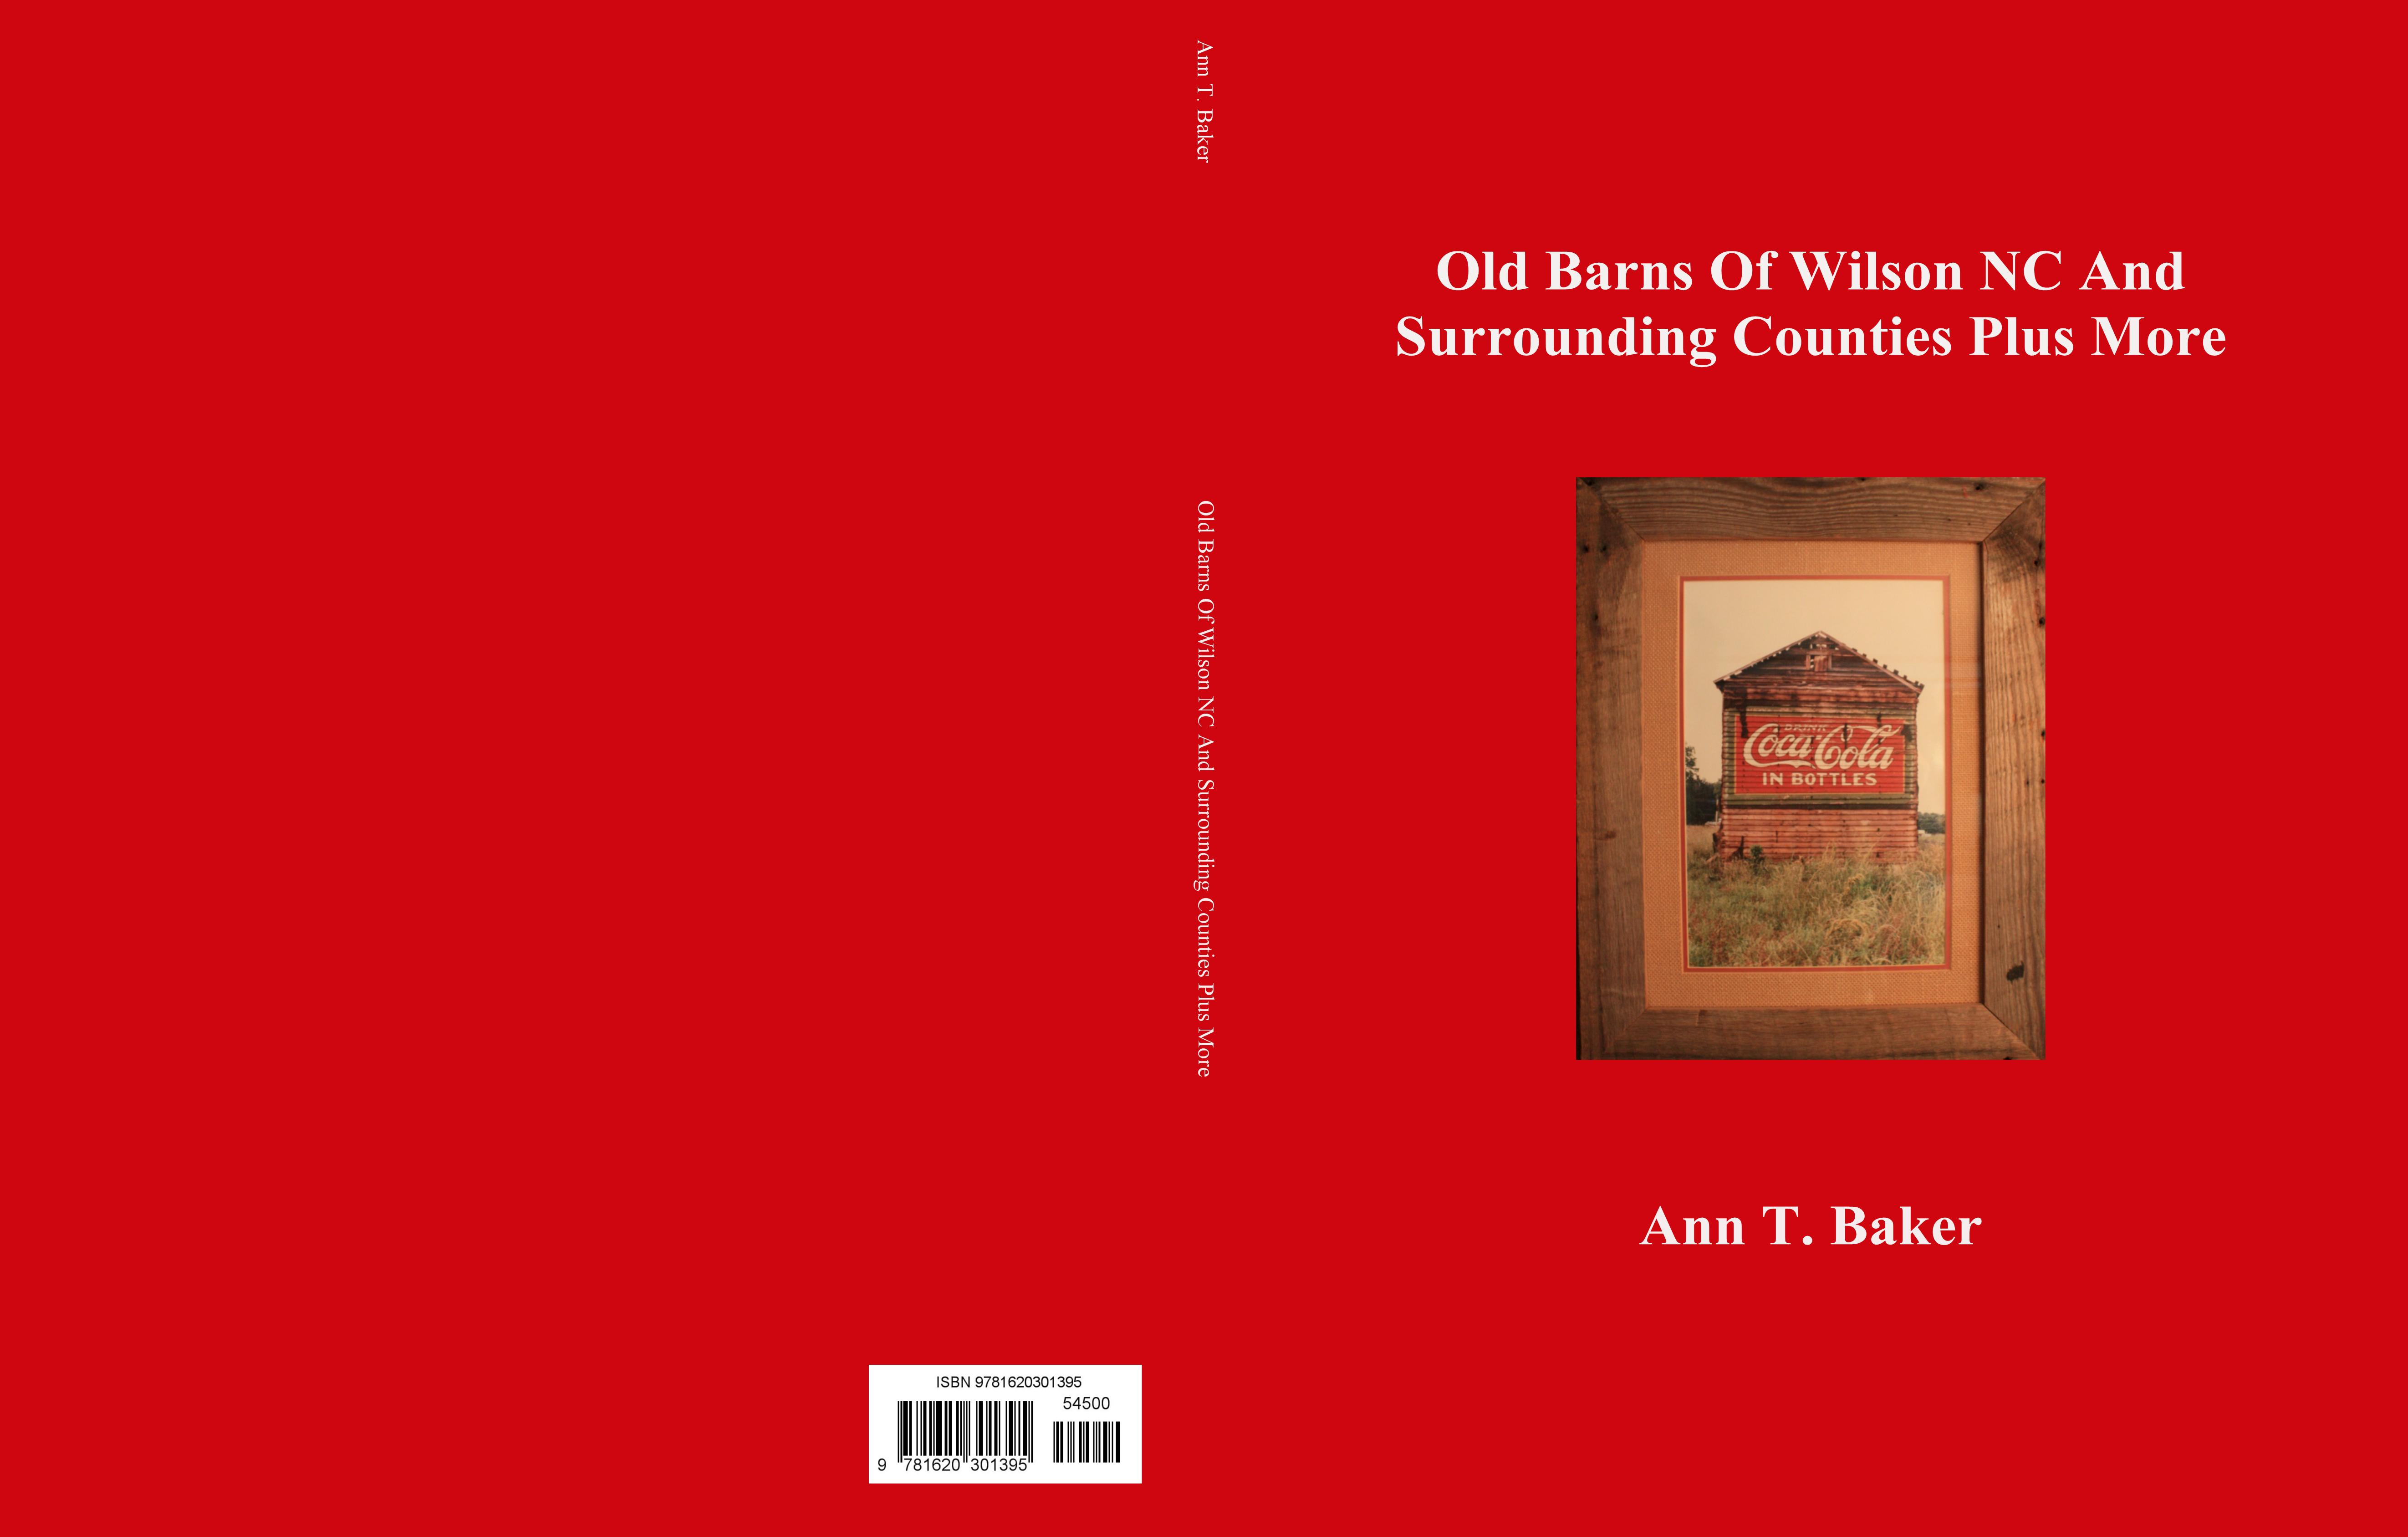 Old Barns Of Wilson NC And Surrounding Counties Plus More cover image